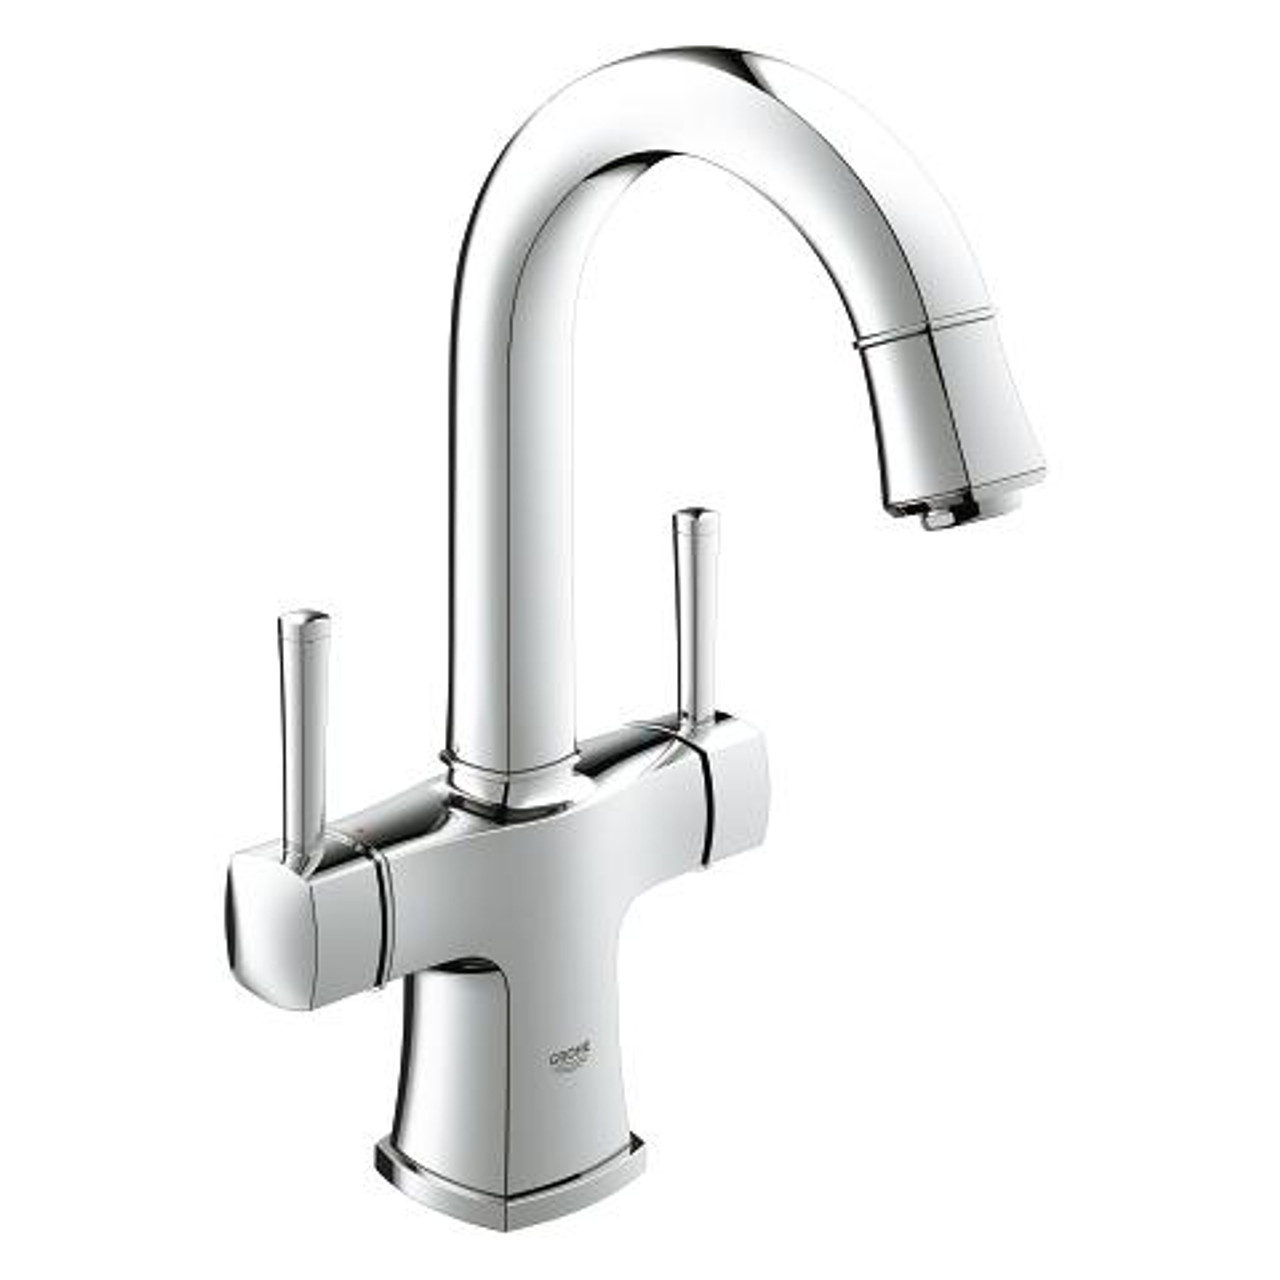 Grohe Grander Single Hole Two Handle Bathroom Faucet L Size Chrome